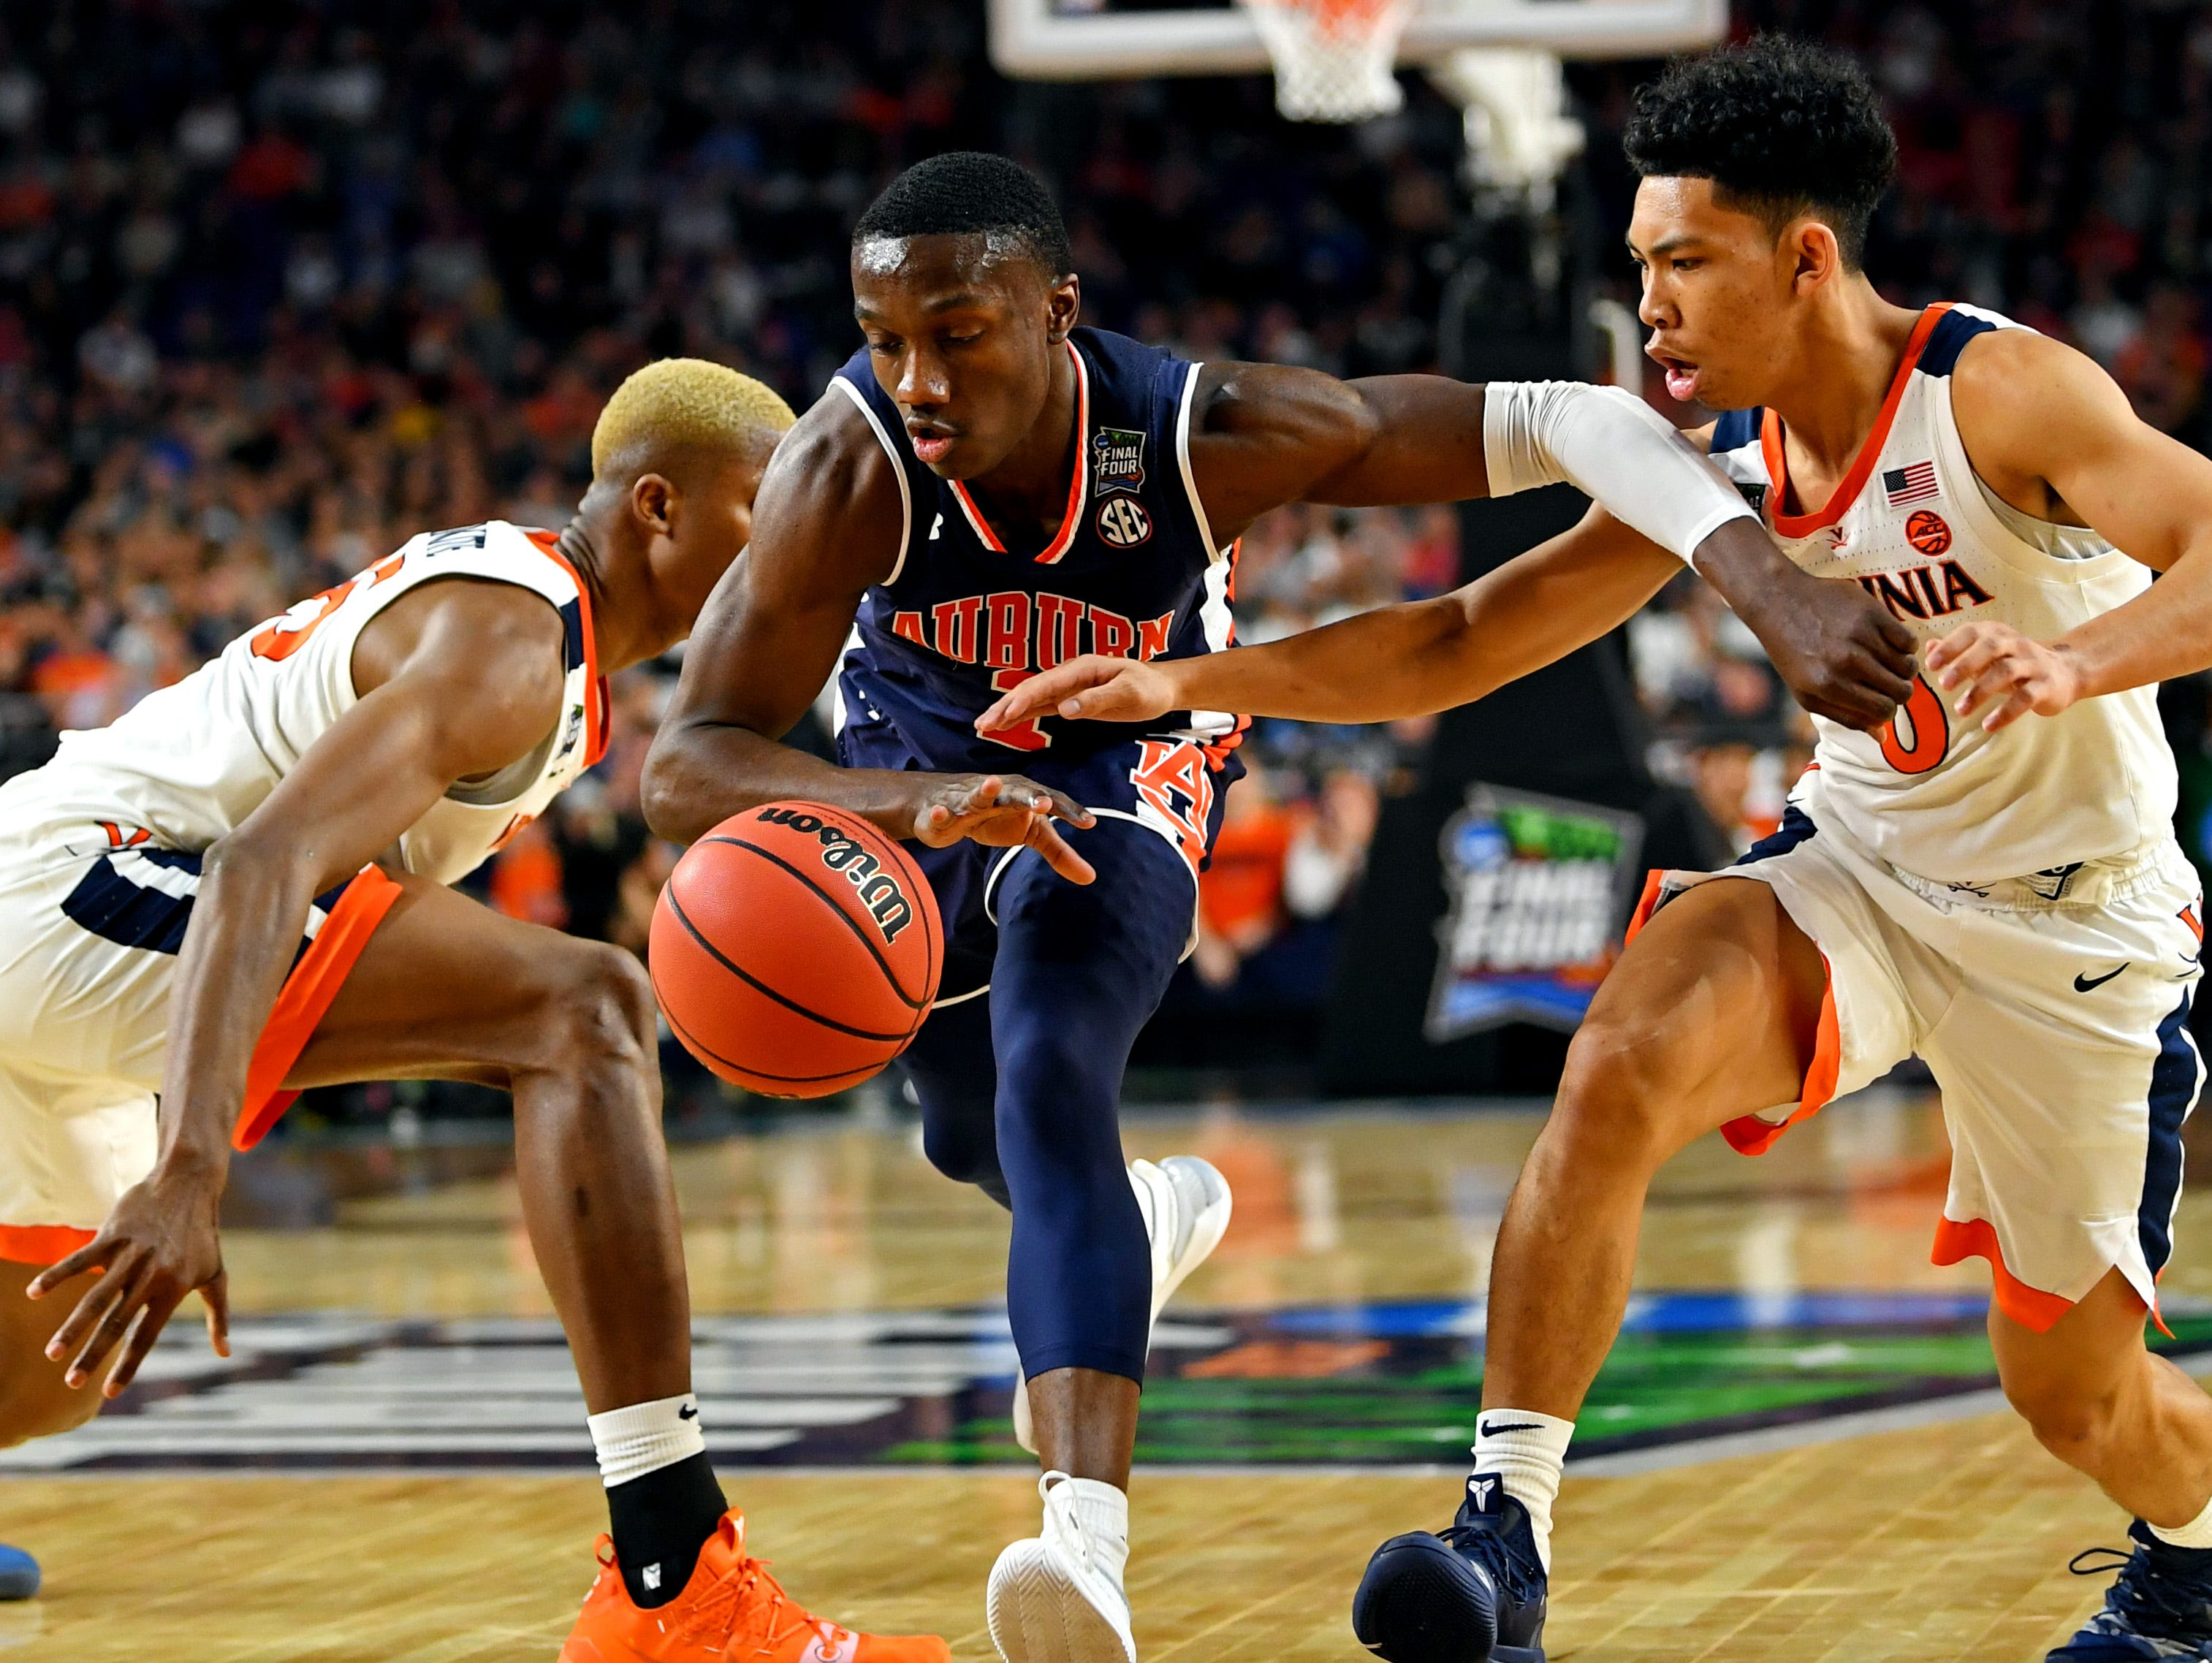 Auburn Tigers guard Jared Harper (1) drives to the basket against the Virginia Cavaliers.